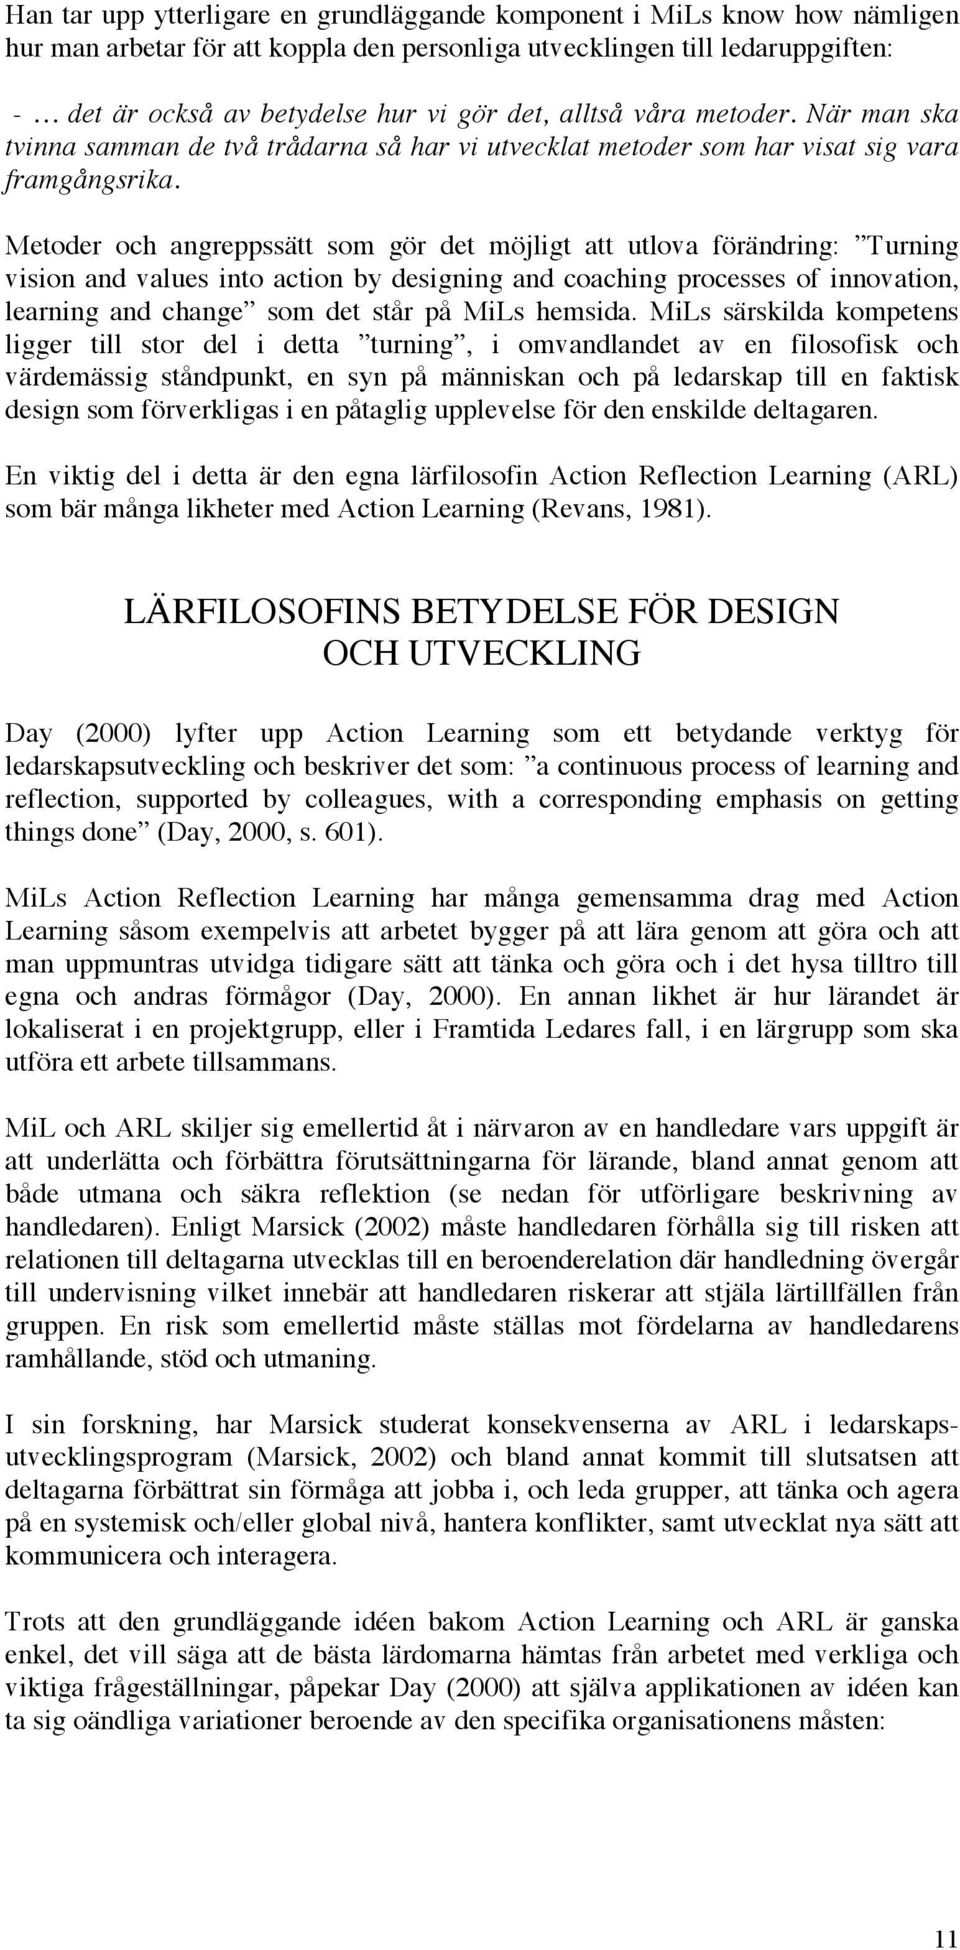 Metoder och angreppssätt som gör det möjligt att utlova förändring: Turning vision and values into action by designing and coaching processes of innovation, learning and change som det står på MiLs